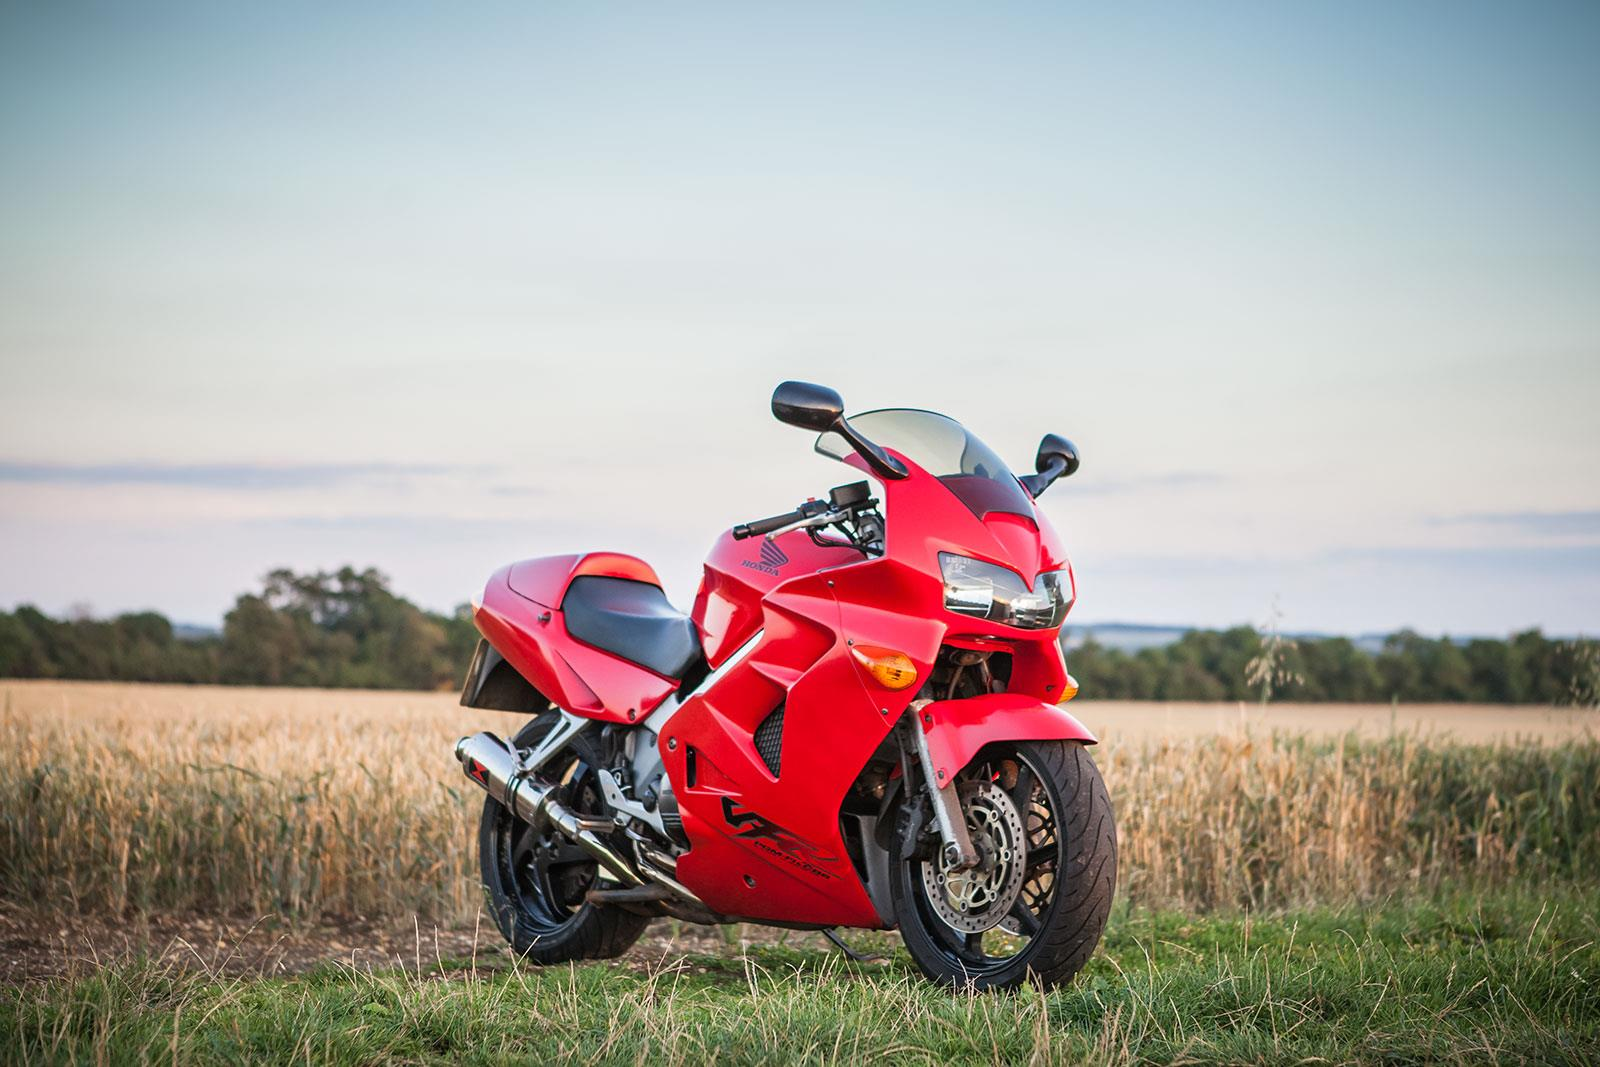 2018 honda vfr800. wonderful vfr800 bike of the day honda vfr800 in 2018 honda vfr800 m